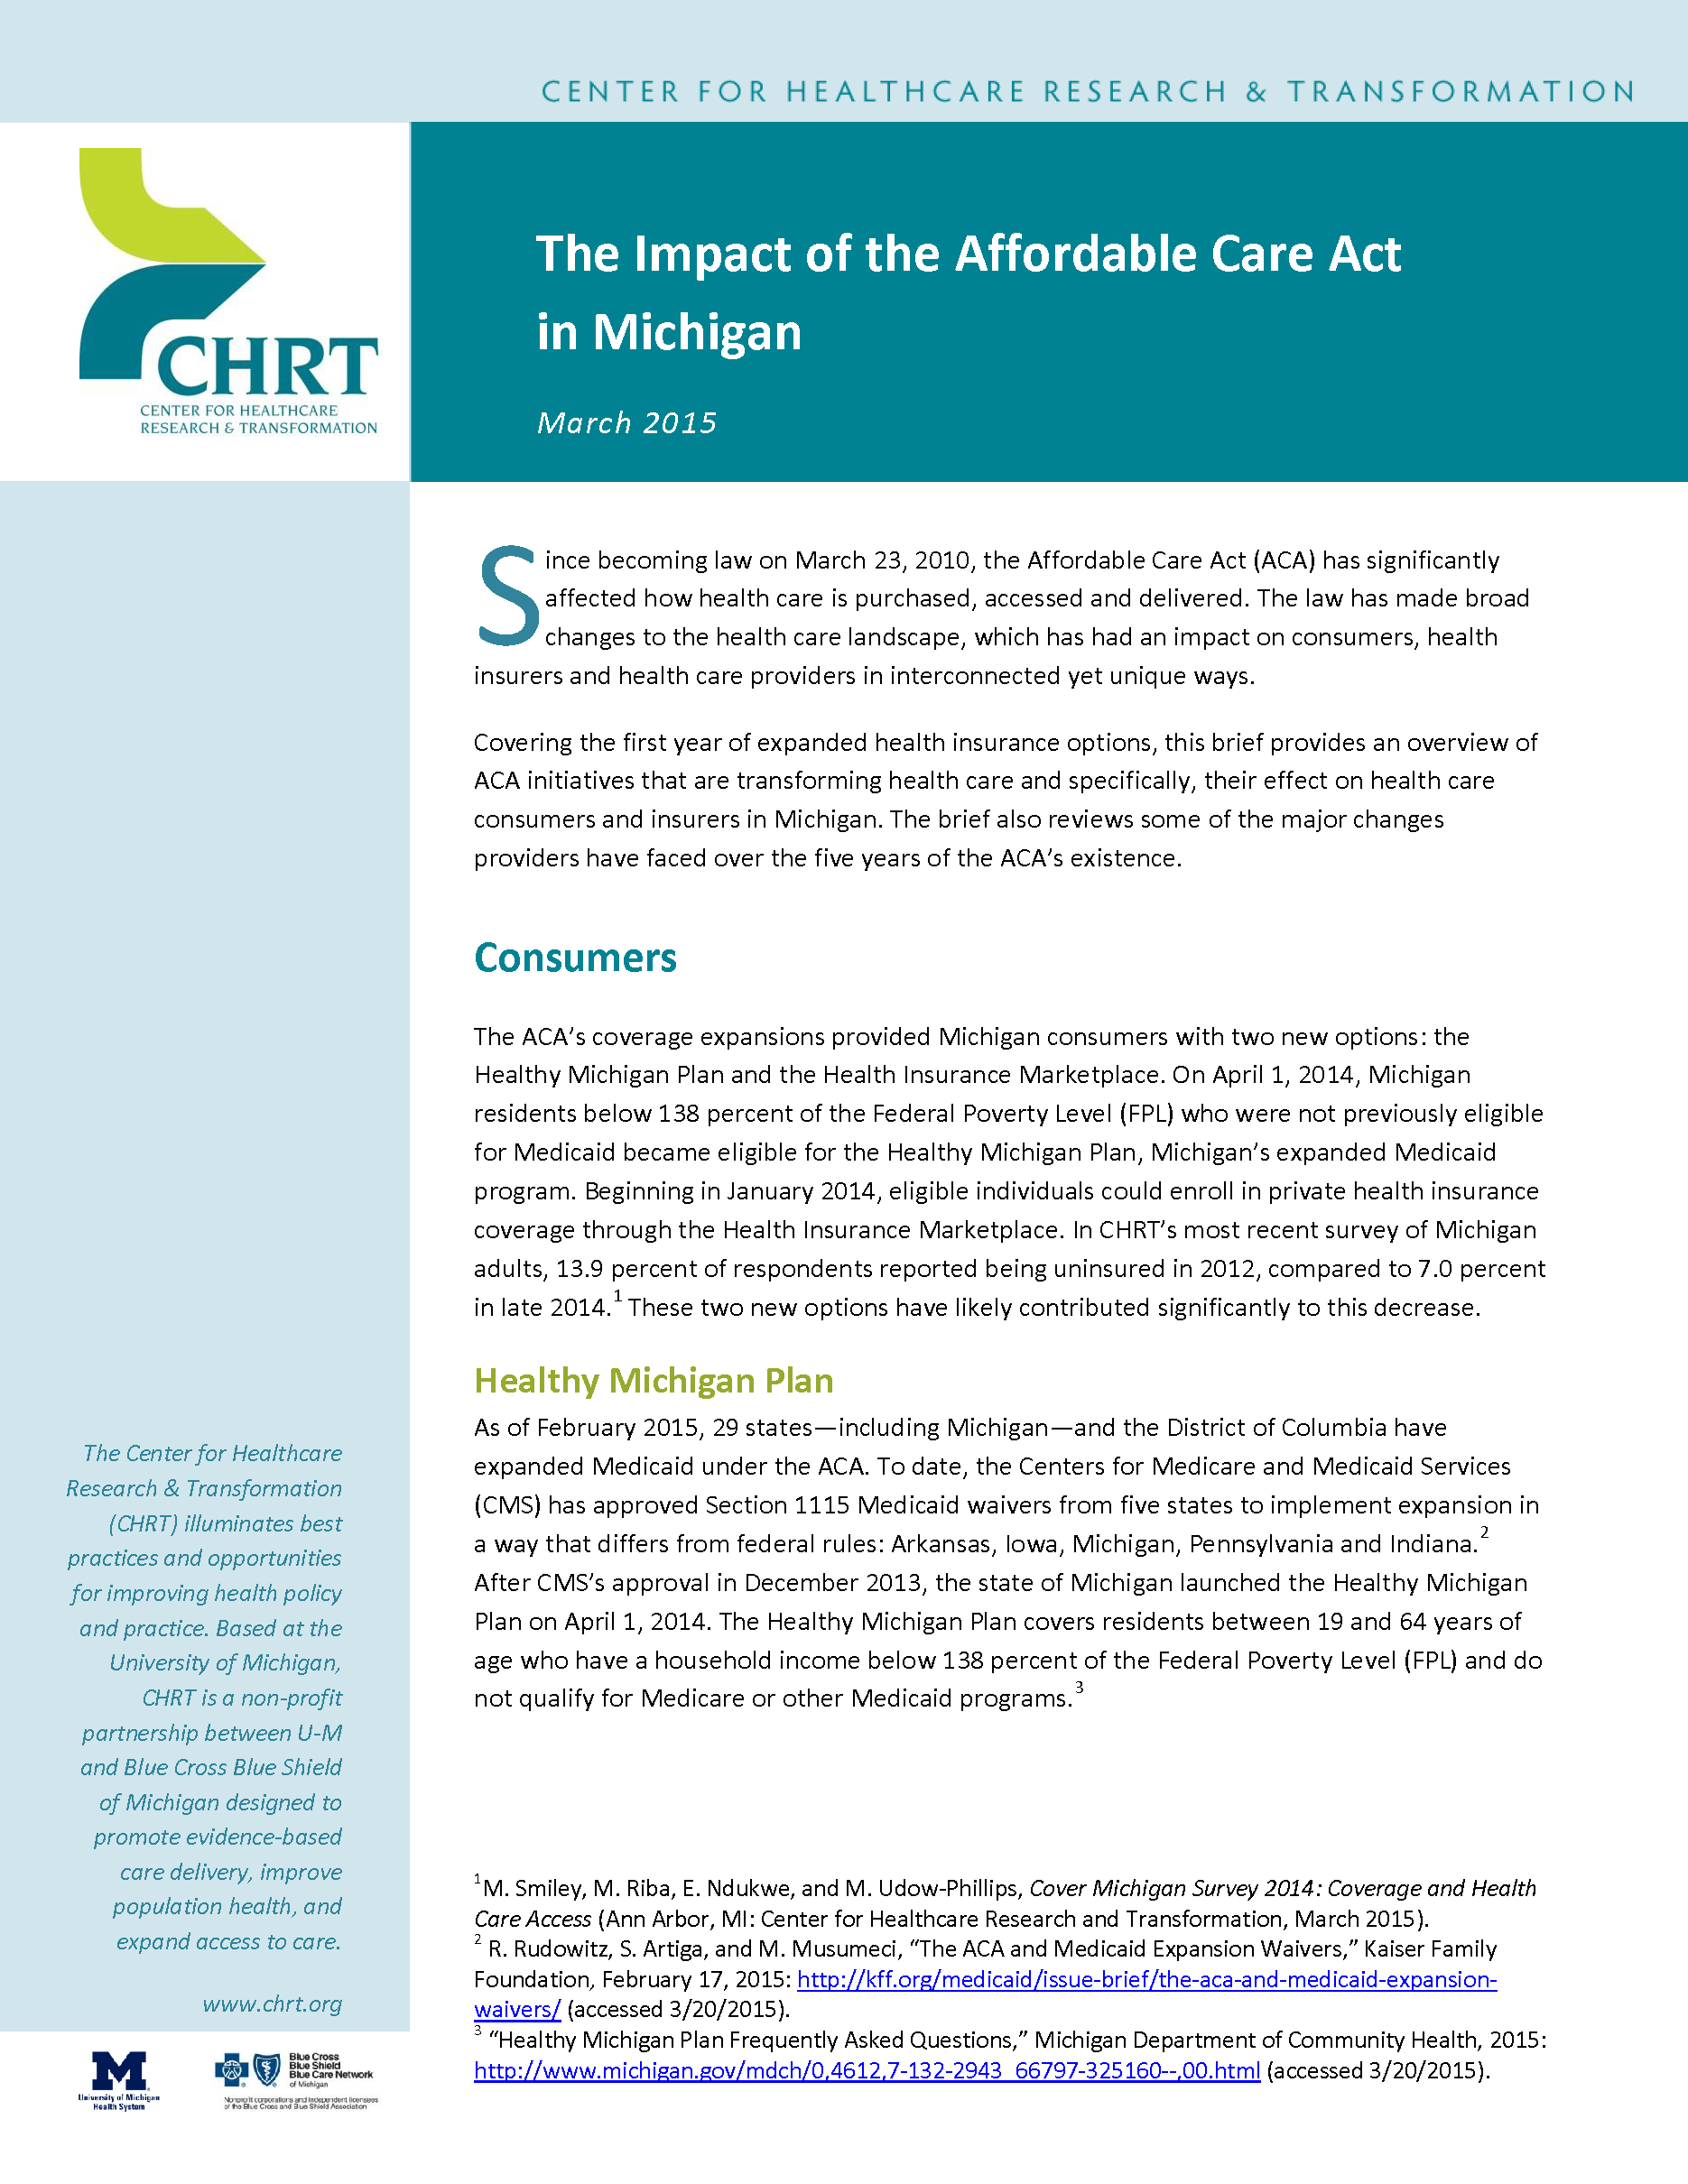 The Impact of the Affordable Care Act in Michigan | Center